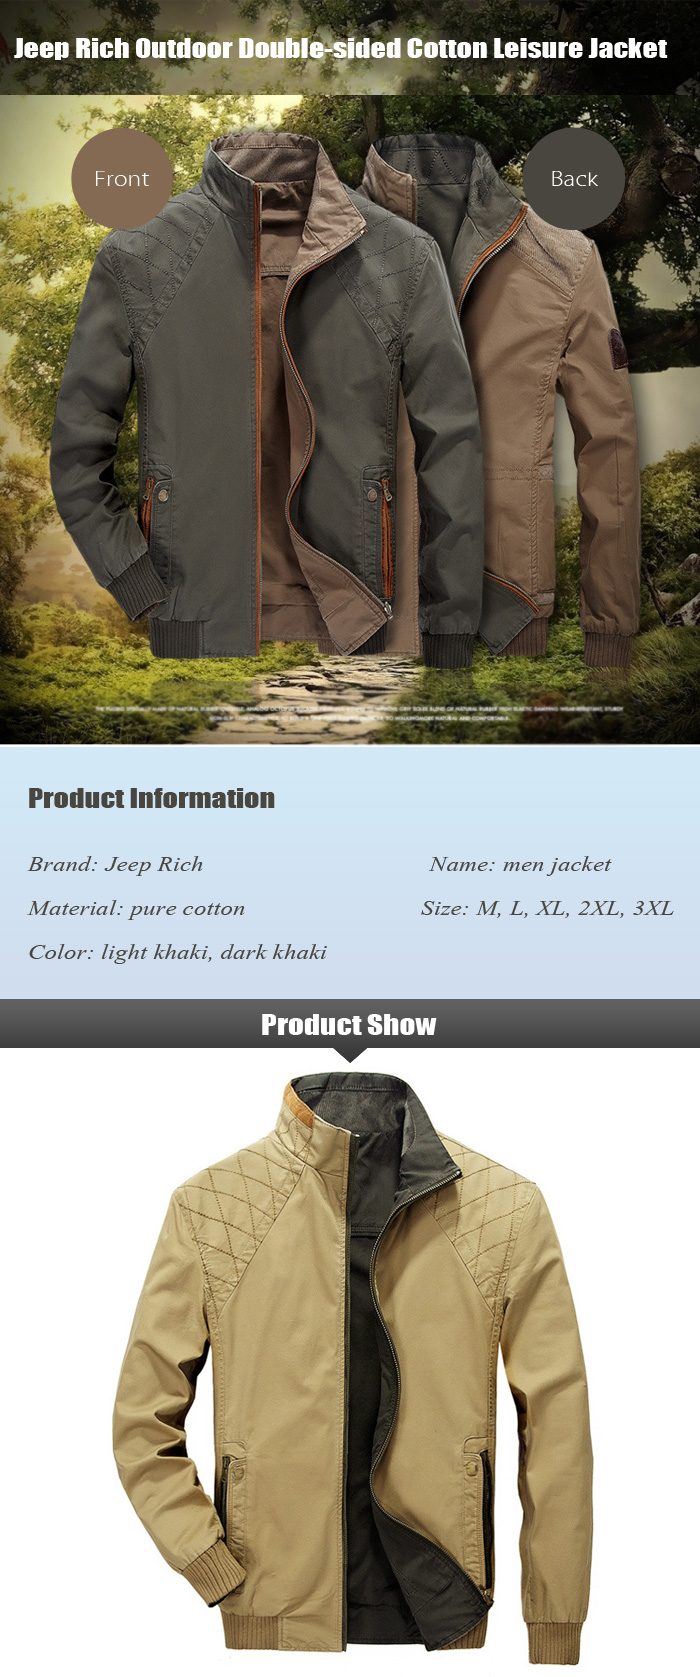 Jeep Rich Double-sided Cotton Leisure Jacket Outdoor Autumn Winter Coat